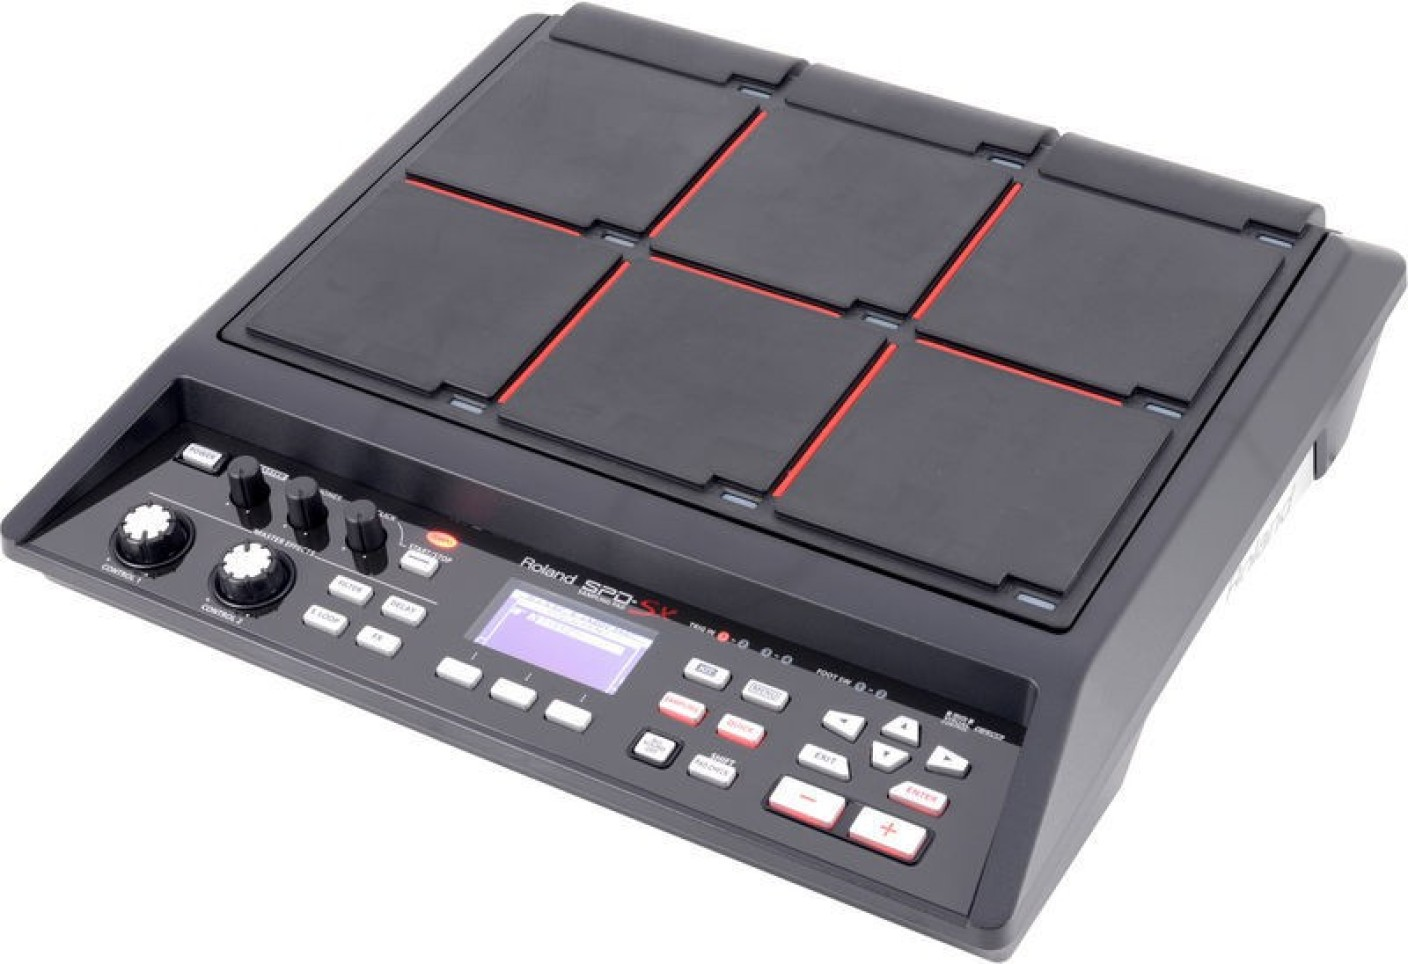 Download Electro Drum Pads loop DJ latest 4.3 Android APK